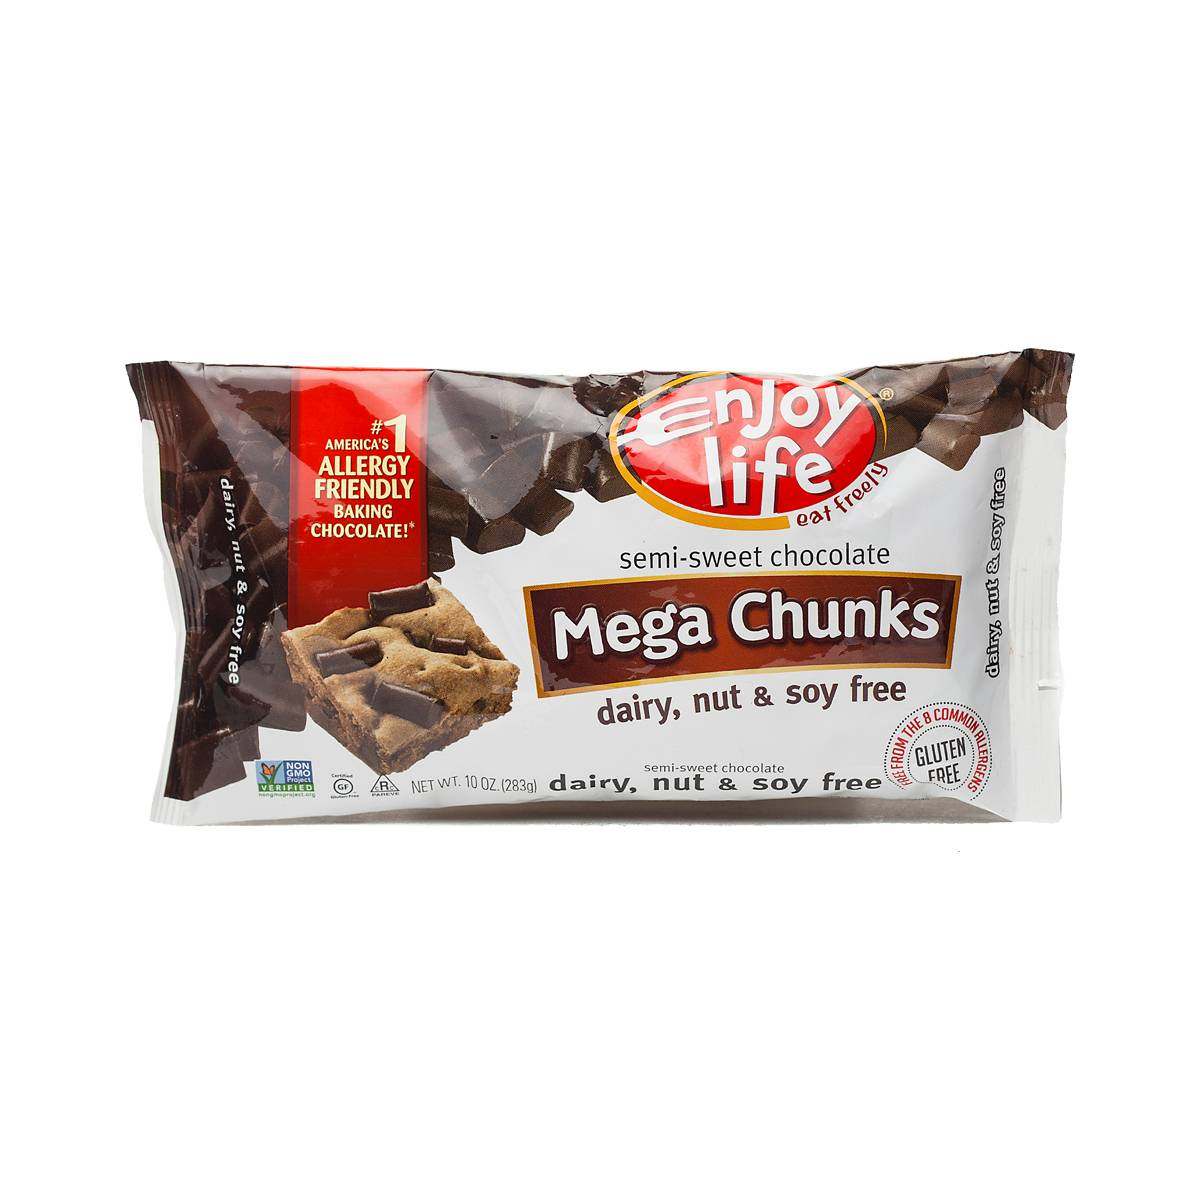 Semi-Sweet Chocolate Mini Chips by Enjoy Life - Thrive Market